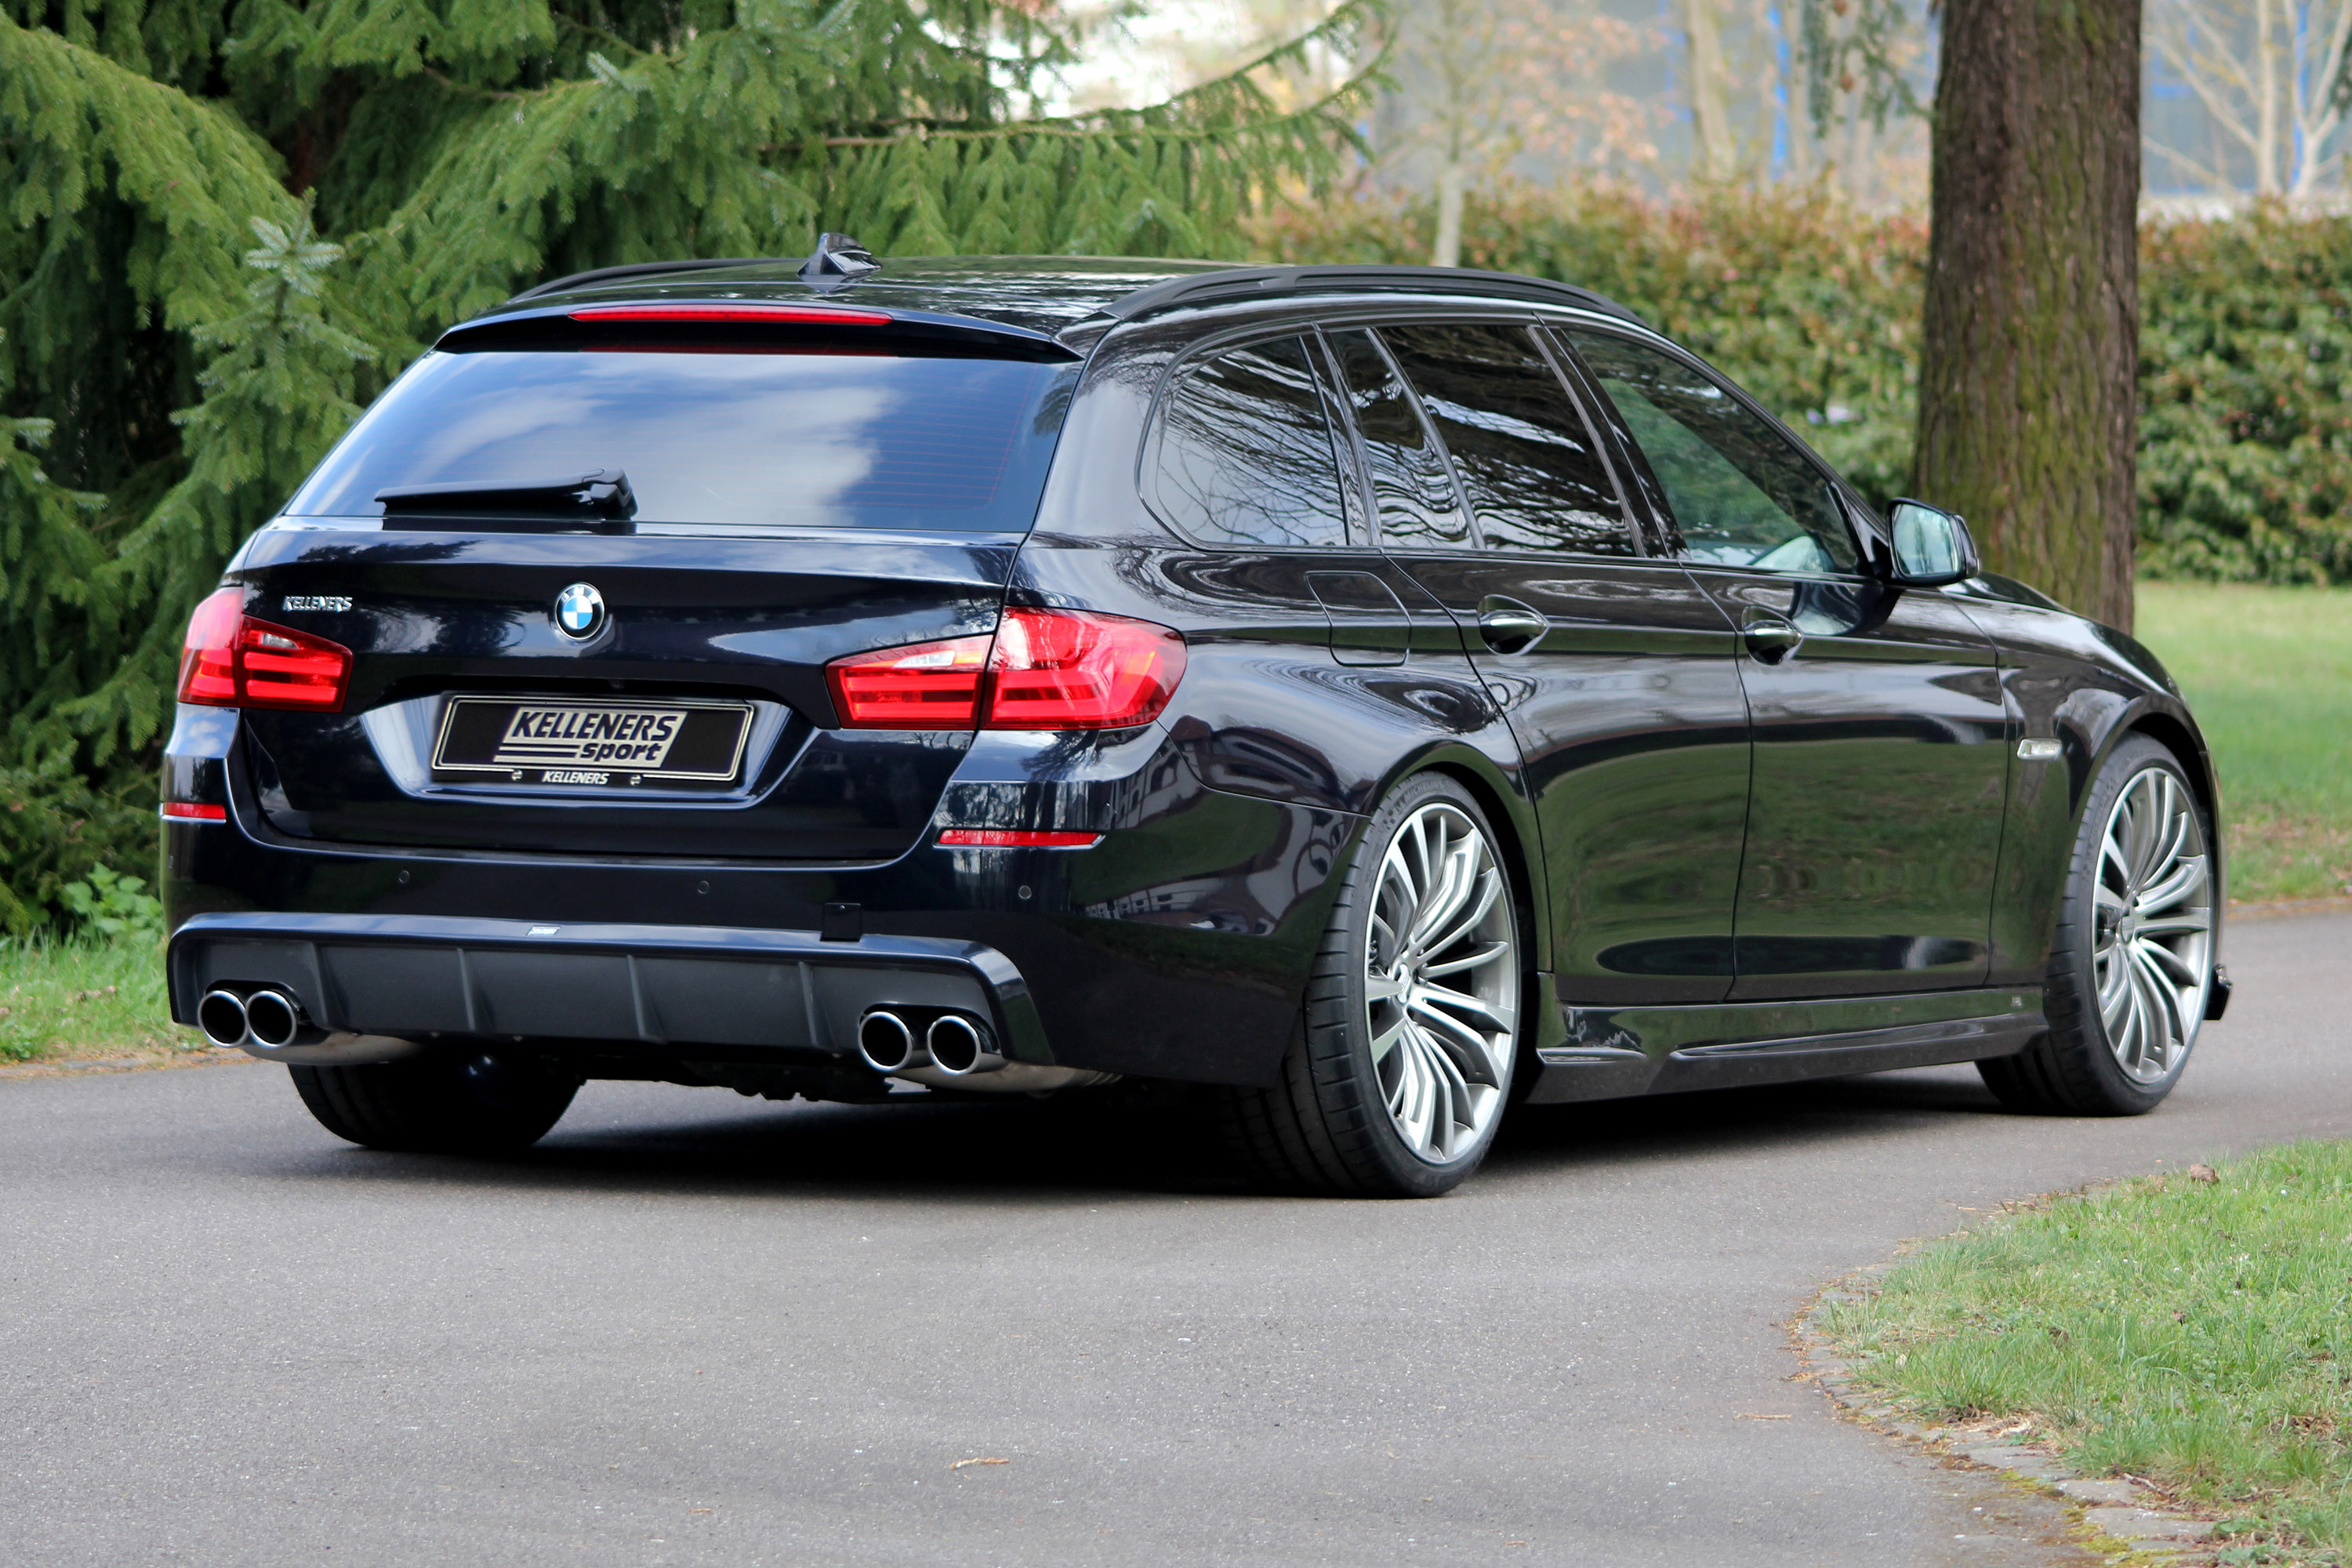 f11 bmw 5 series touring conversion from kelleners sport. Black Bedroom Furniture Sets. Home Design Ideas